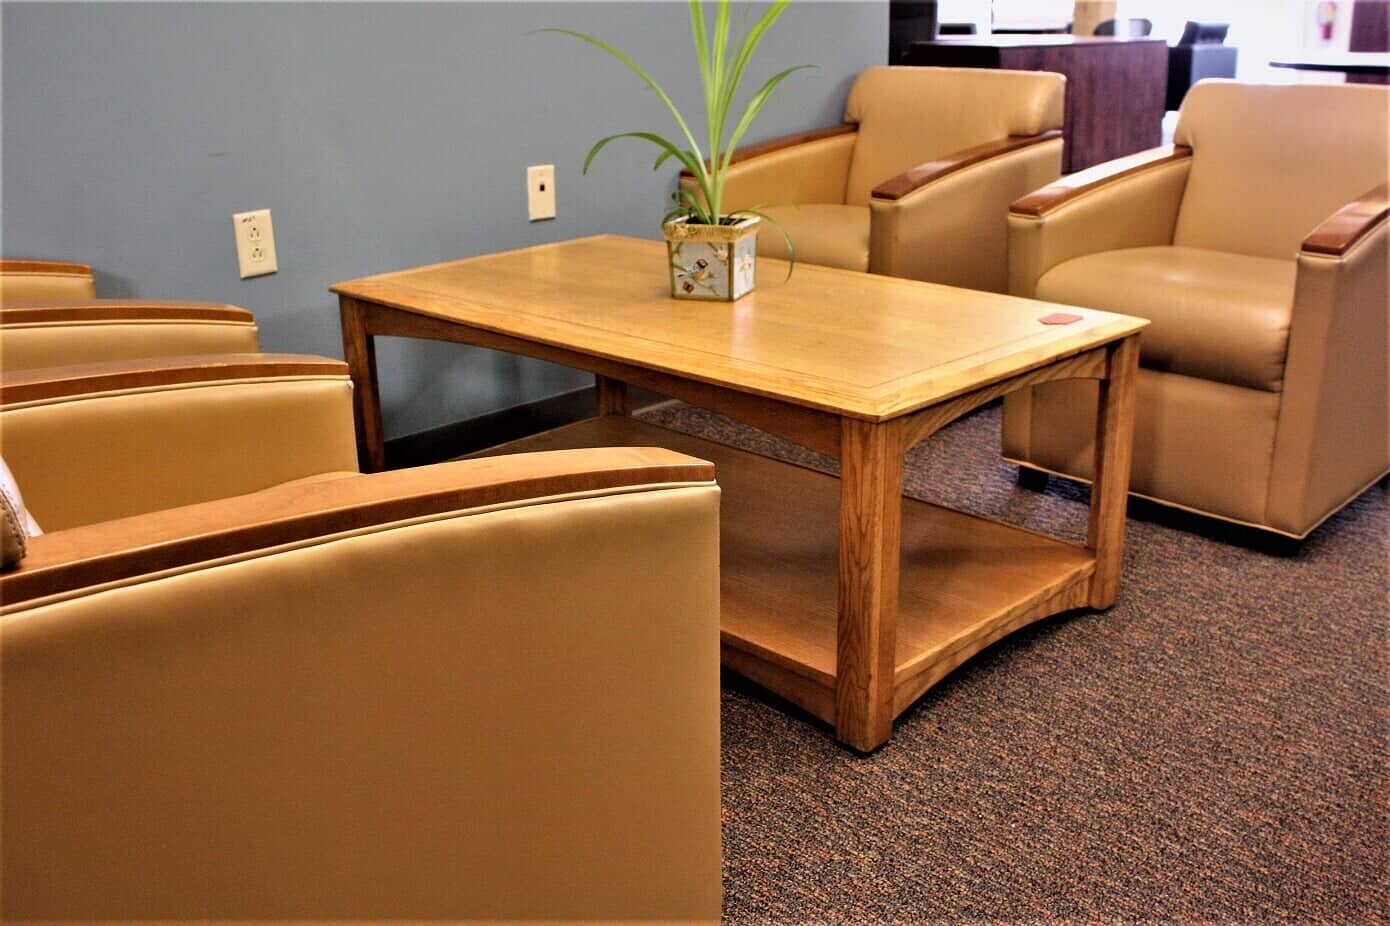 Office furniture exchange coupons near me in burlington for Office furniture near me